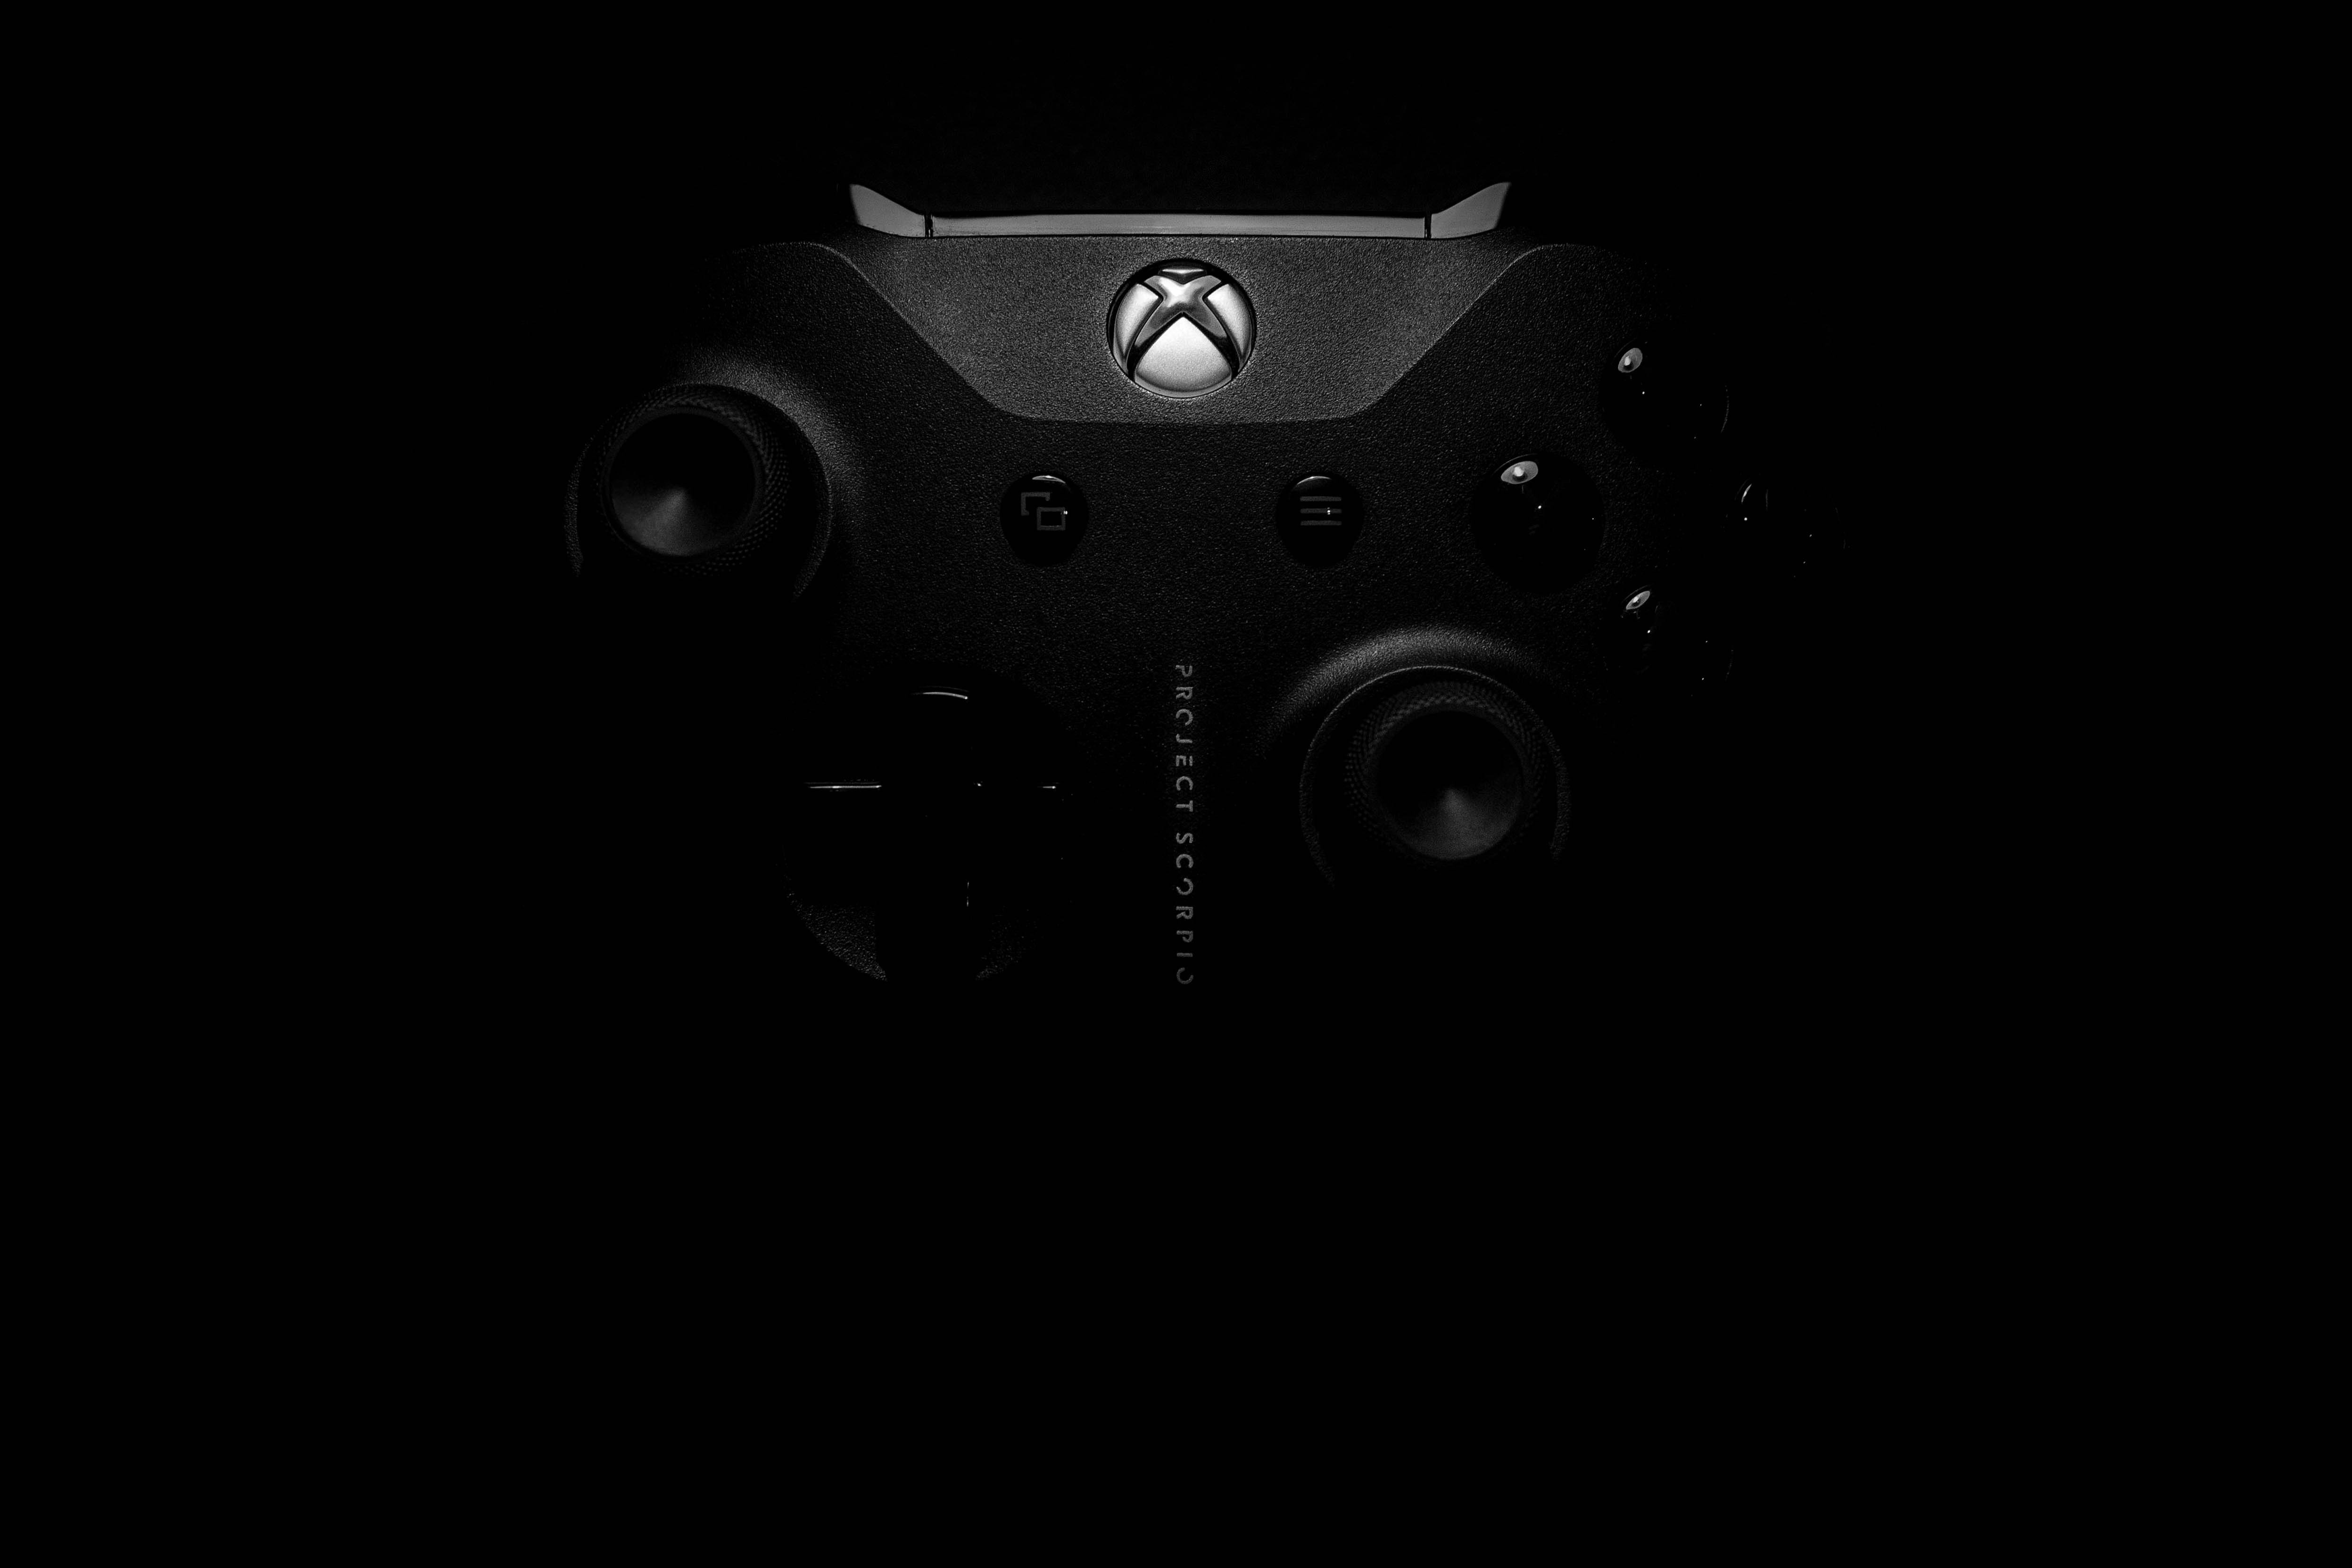 gray Xbox One game controller